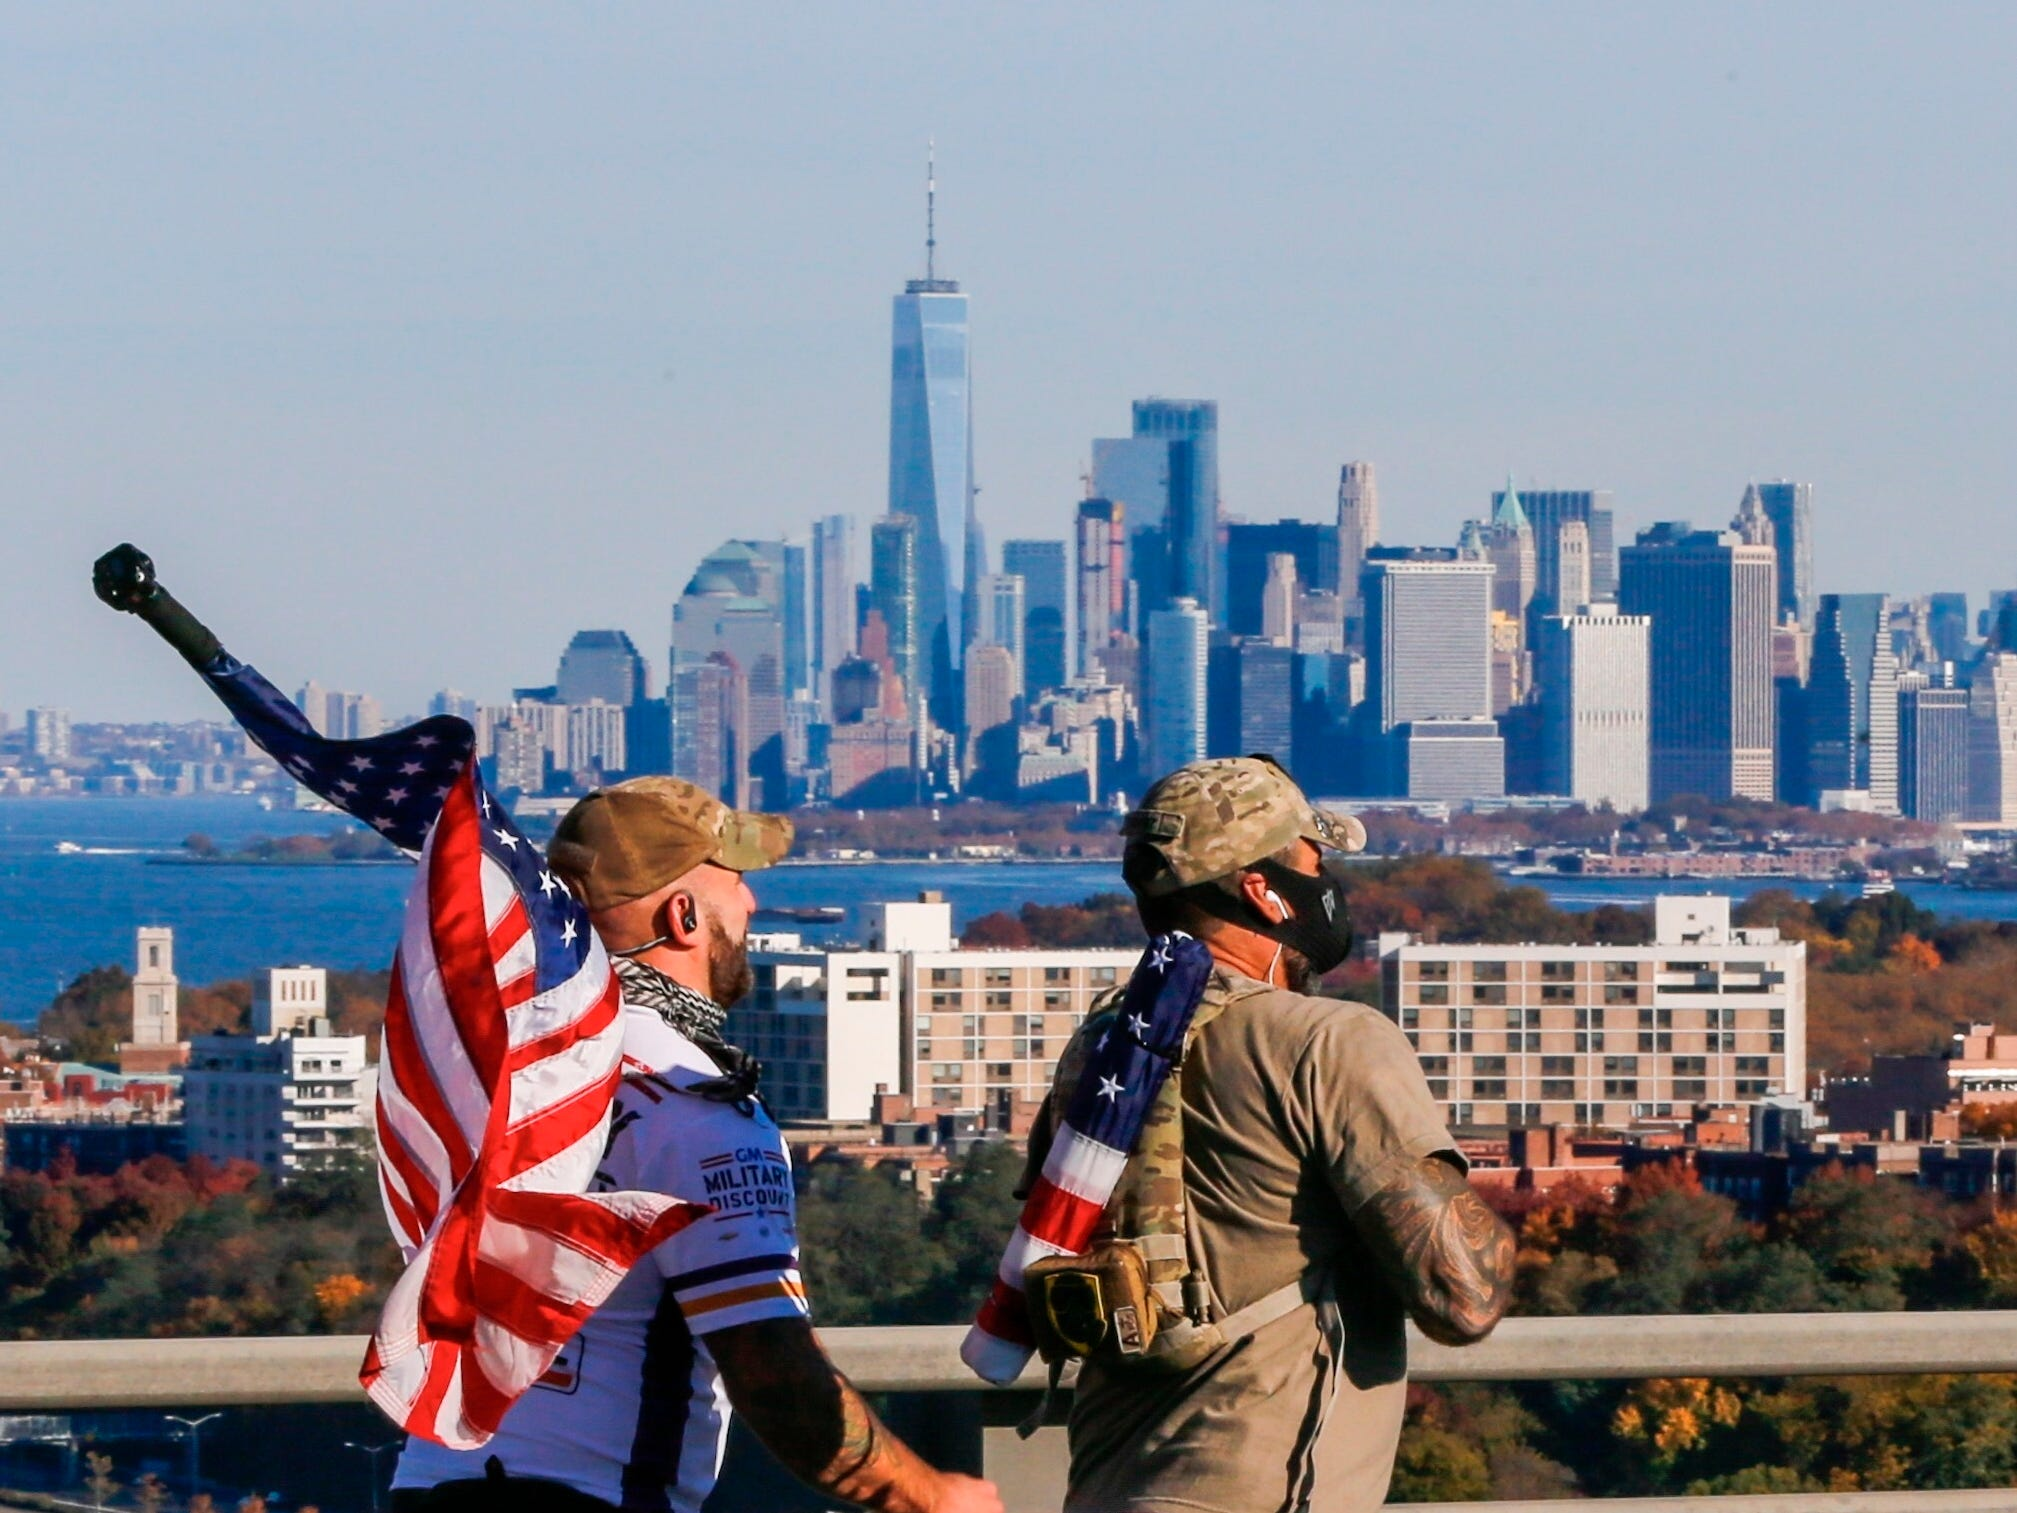 With the One World Trade center in the background, runners cross the Verrazano-Narrows Bridge during the New York City Marathon on Nov. 4.